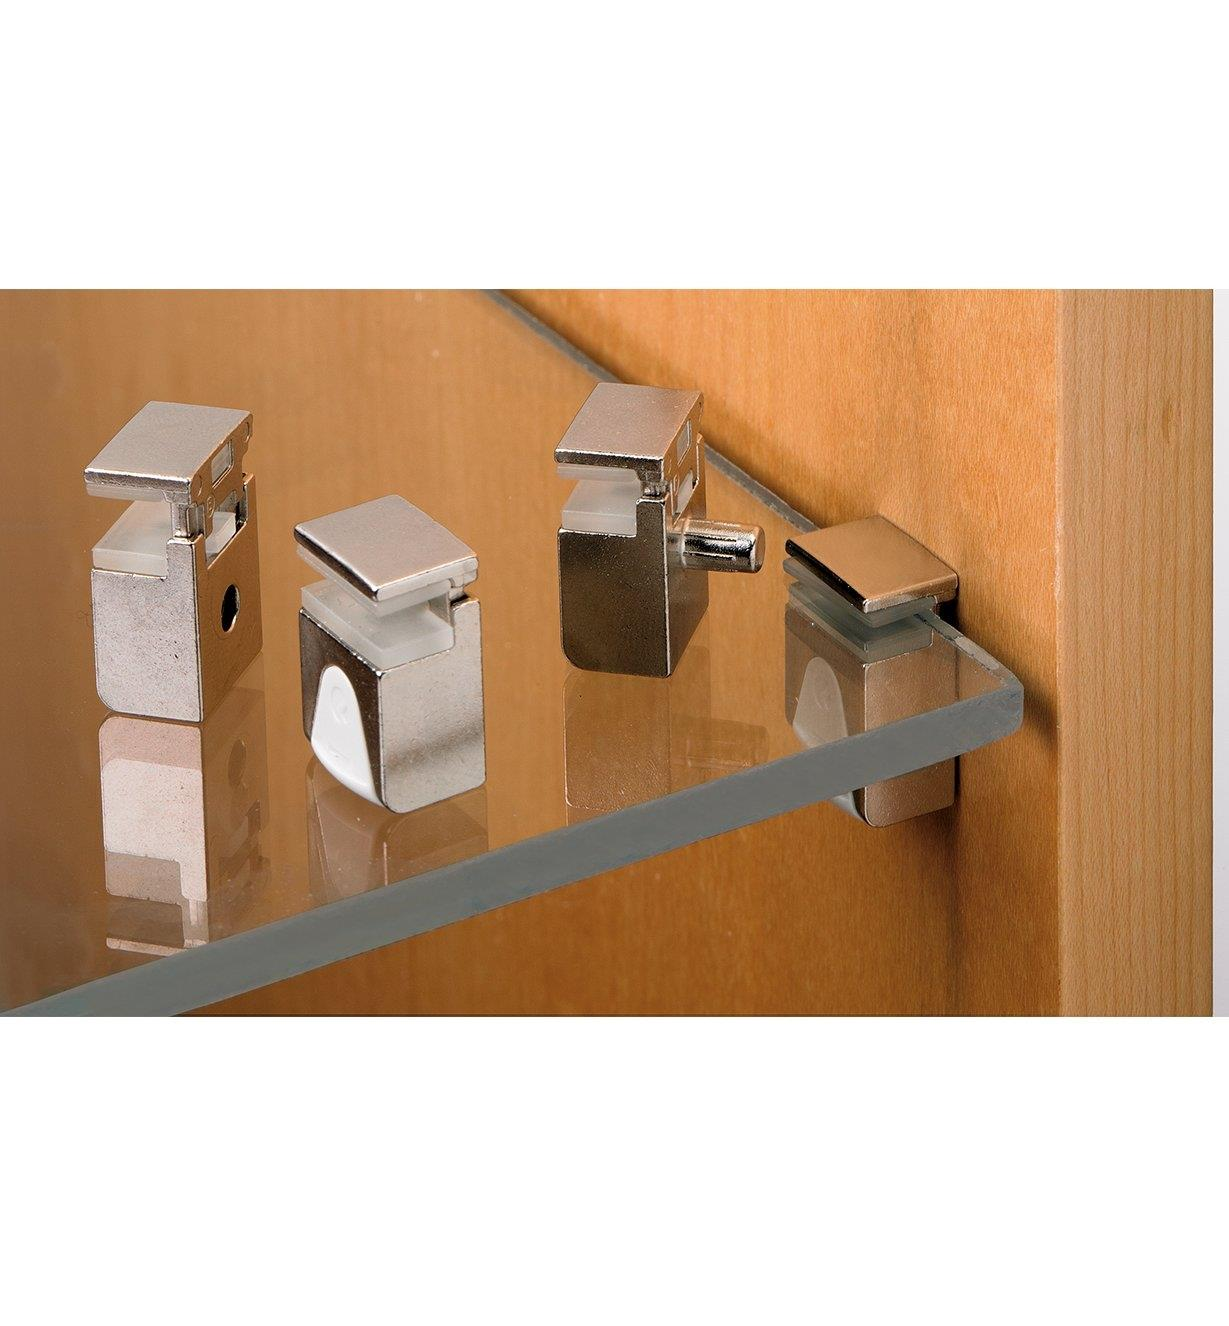 Kubic Supports for Glass Shelves